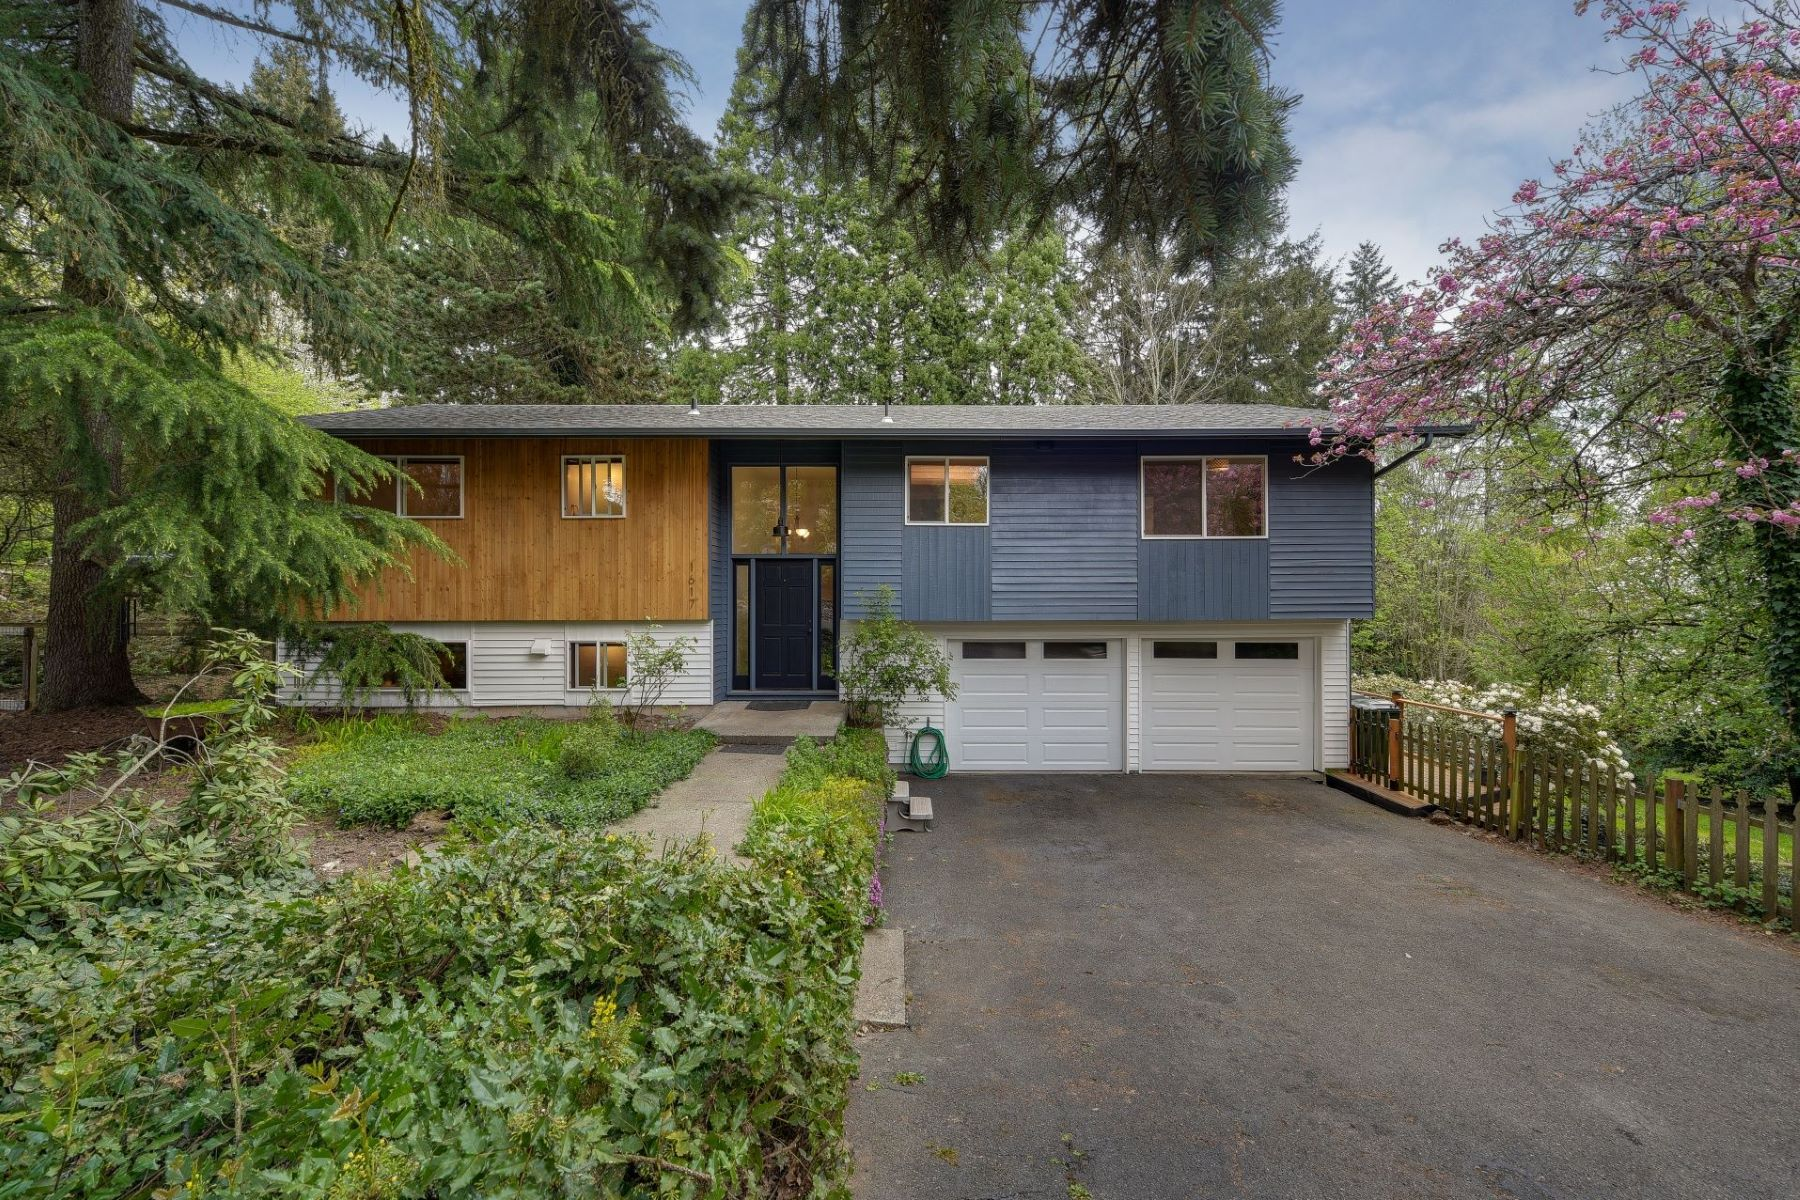 Other Residential Homes for Active at 1617 MARYLHURST DR West Linn, OR 97068 1617 Marylhurst Dr West Linn, Oregon 97068 United States